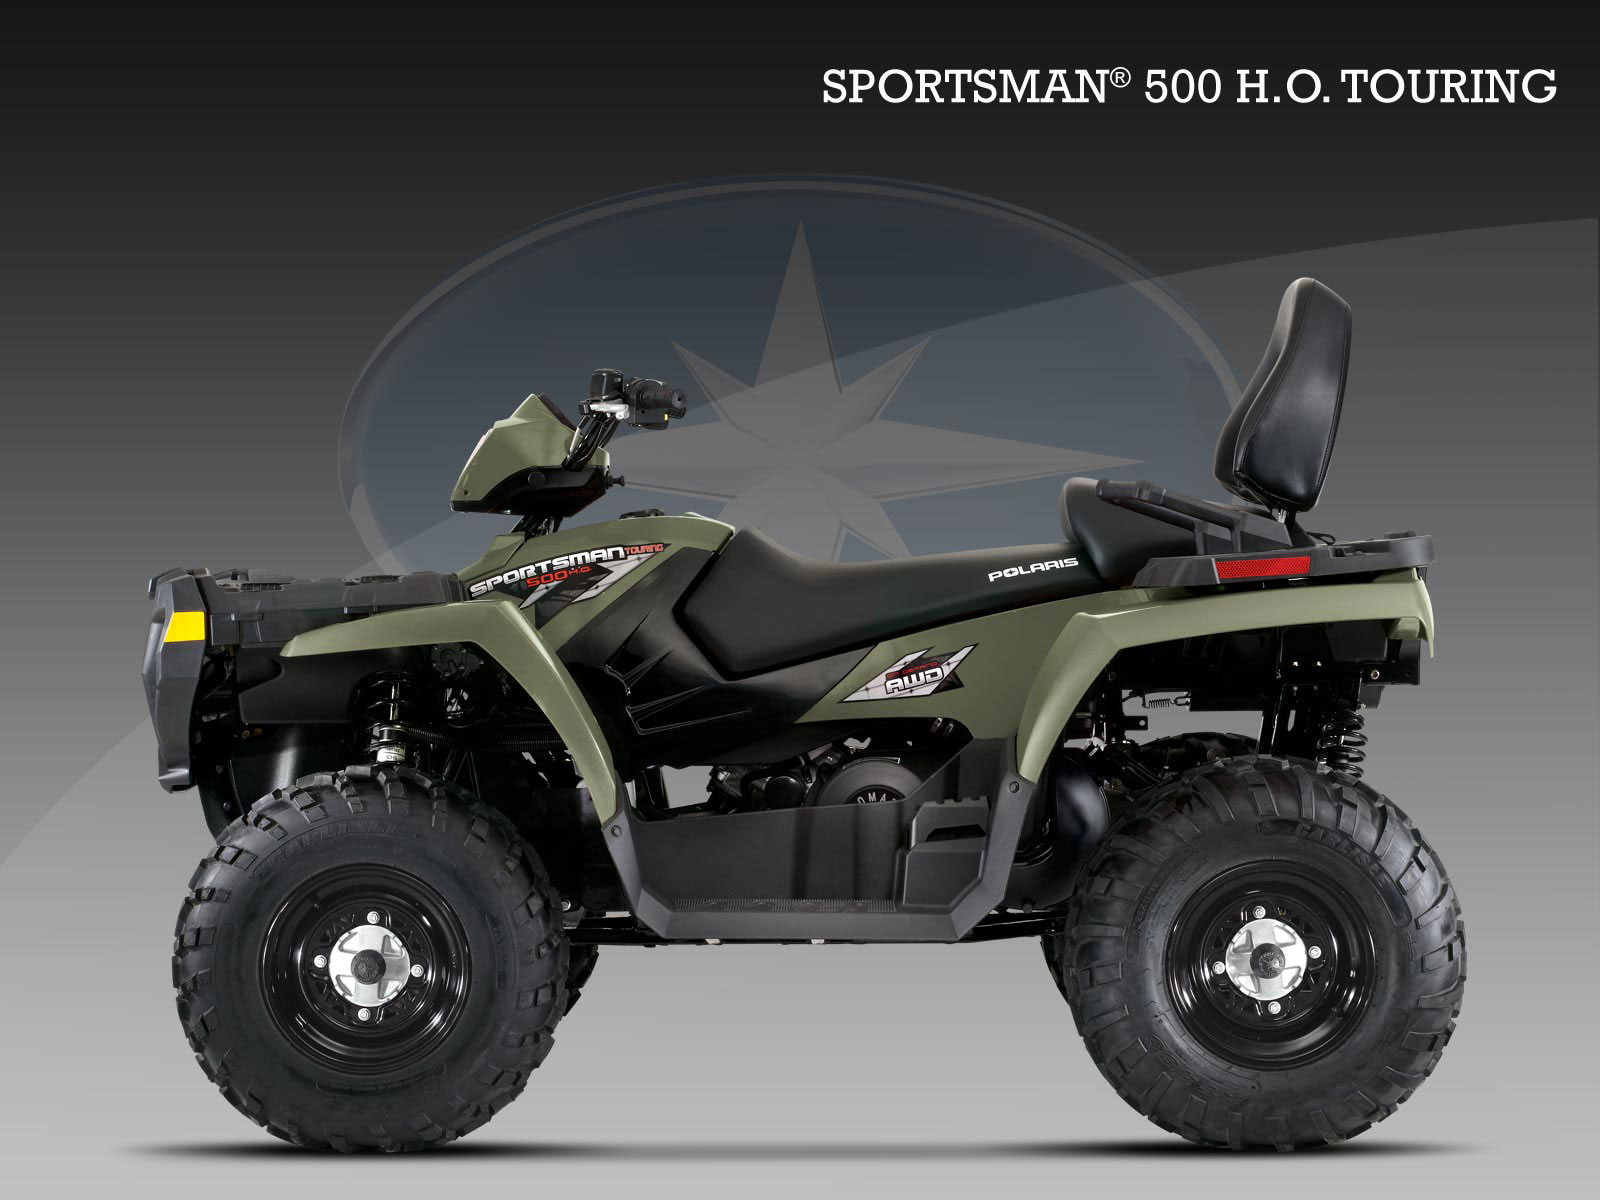 polaris sportsman 500 touring h o specs 2009 2010 autoevolution. Black Bedroom Furniture Sets. Home Design Ideas